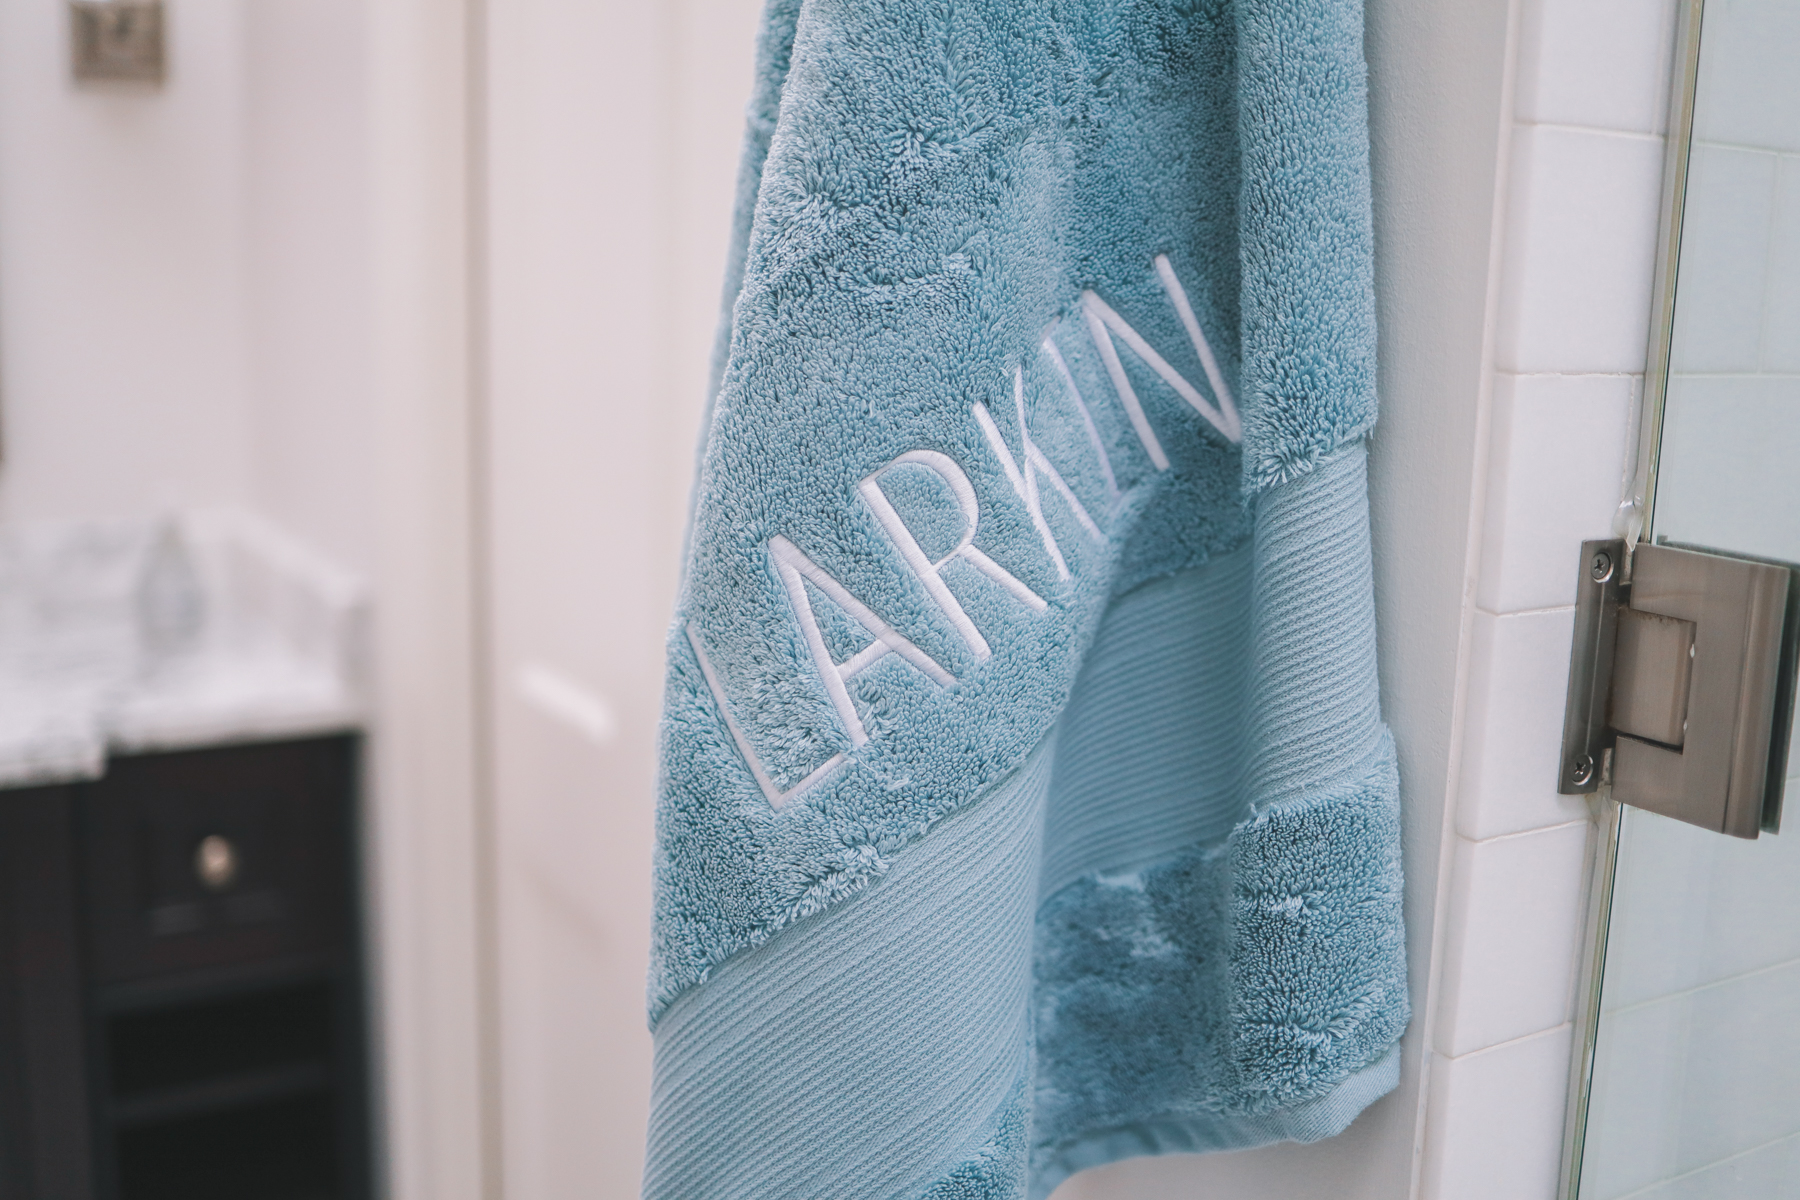 Monogrammed Egyptian cotton towels